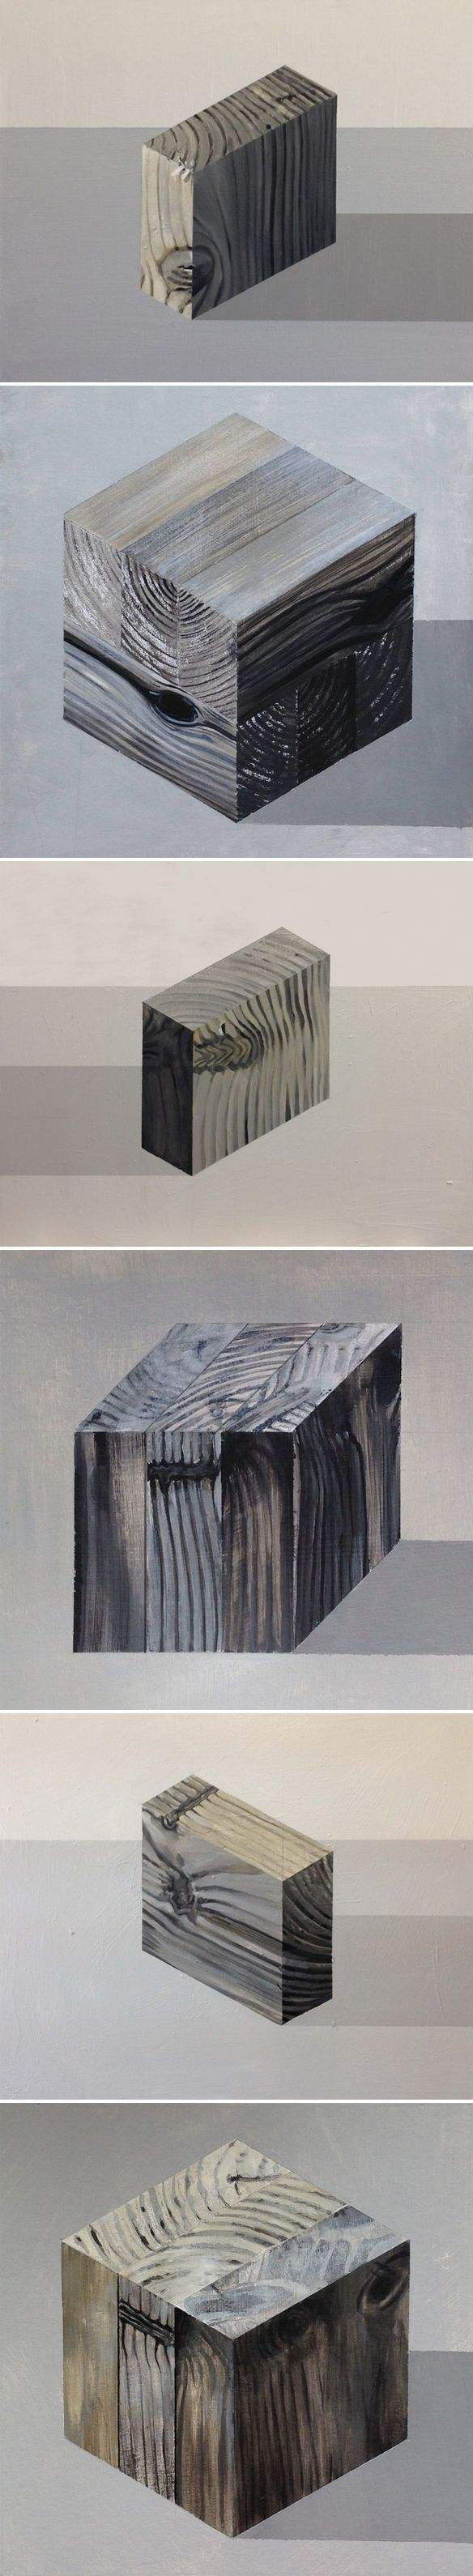 paintings by stuart mcharrie